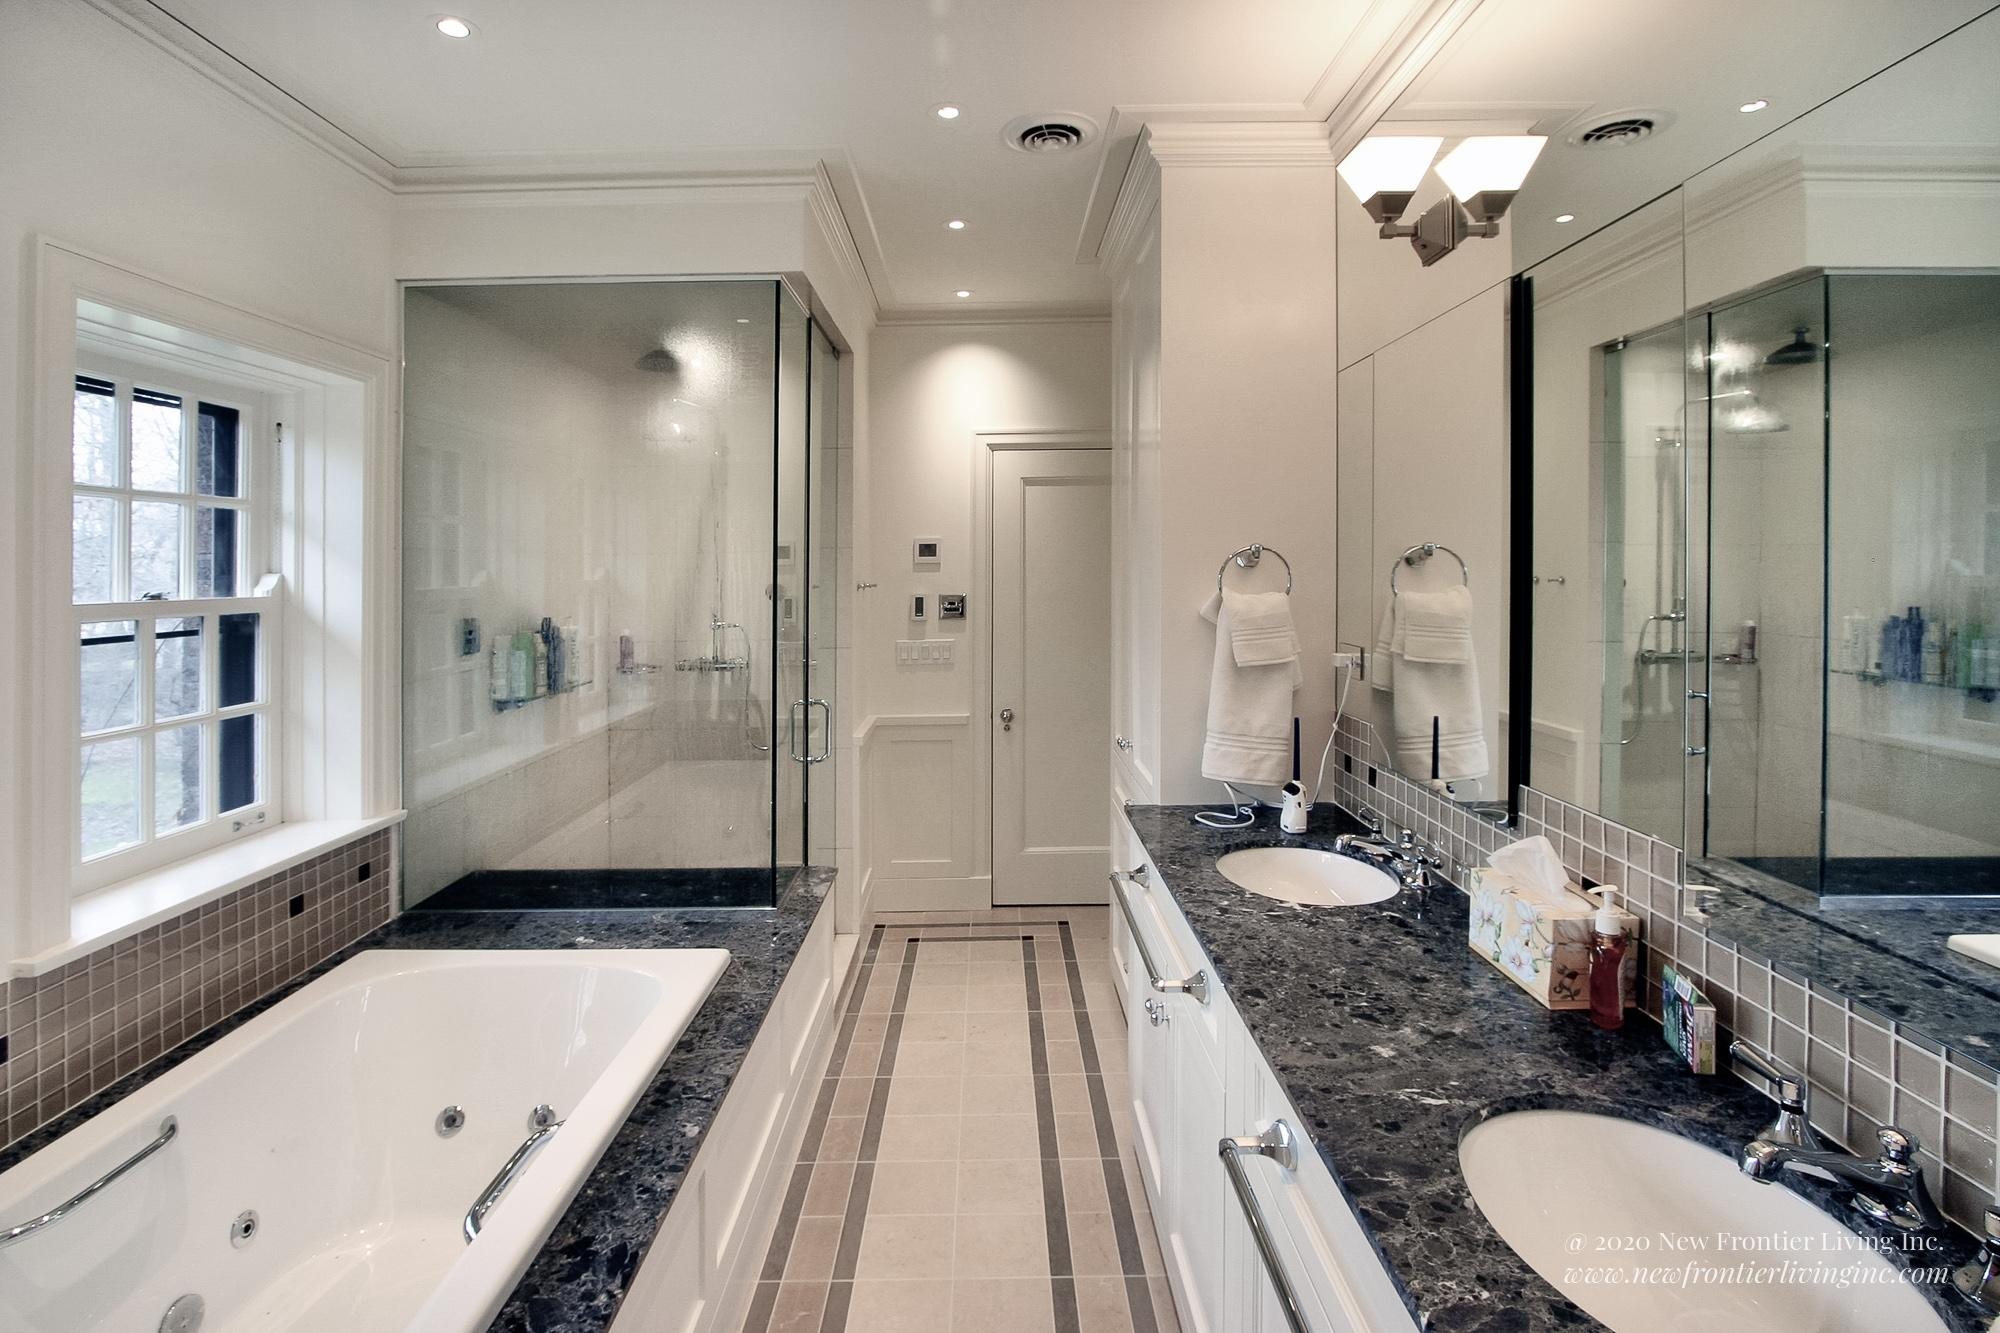 White bathroom with dark gray countertops, walk-in shower, tub on the left and double sink on the right